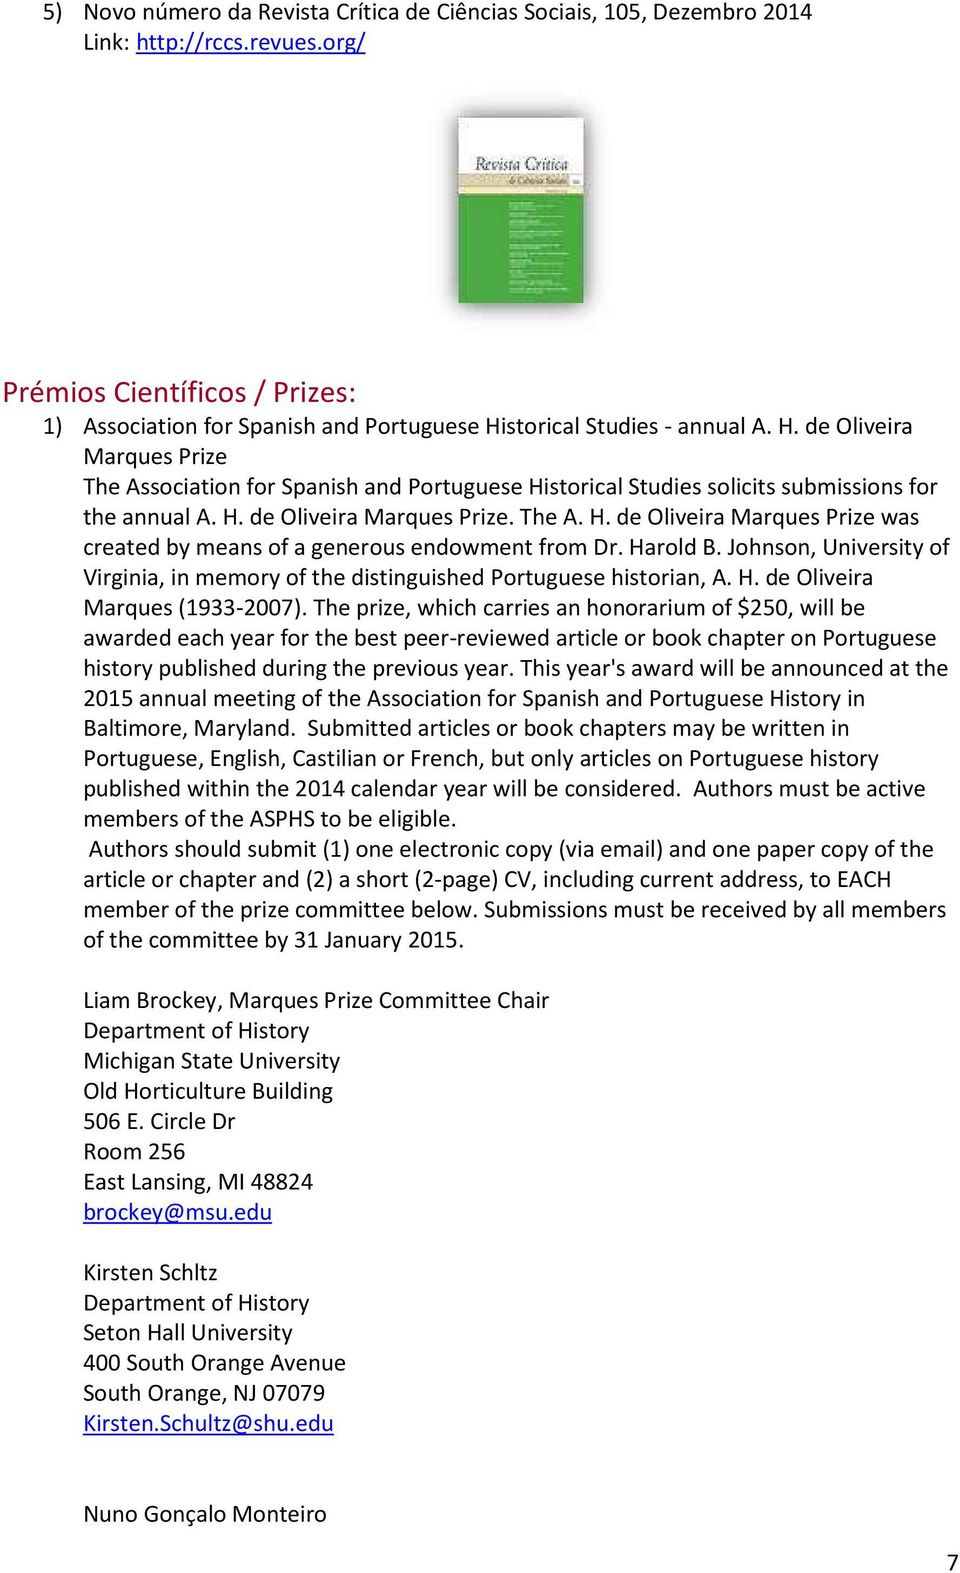 storical Studies - annual A. H. de Oliveira Marques Prize The Association for Spanish and Portuguese Historical Studies solicits submissions for the annual A. H. de Oliveira Marques Prize. The A. H. de Oliveira Marques Prize was created by means of a generous endowment from Dr.